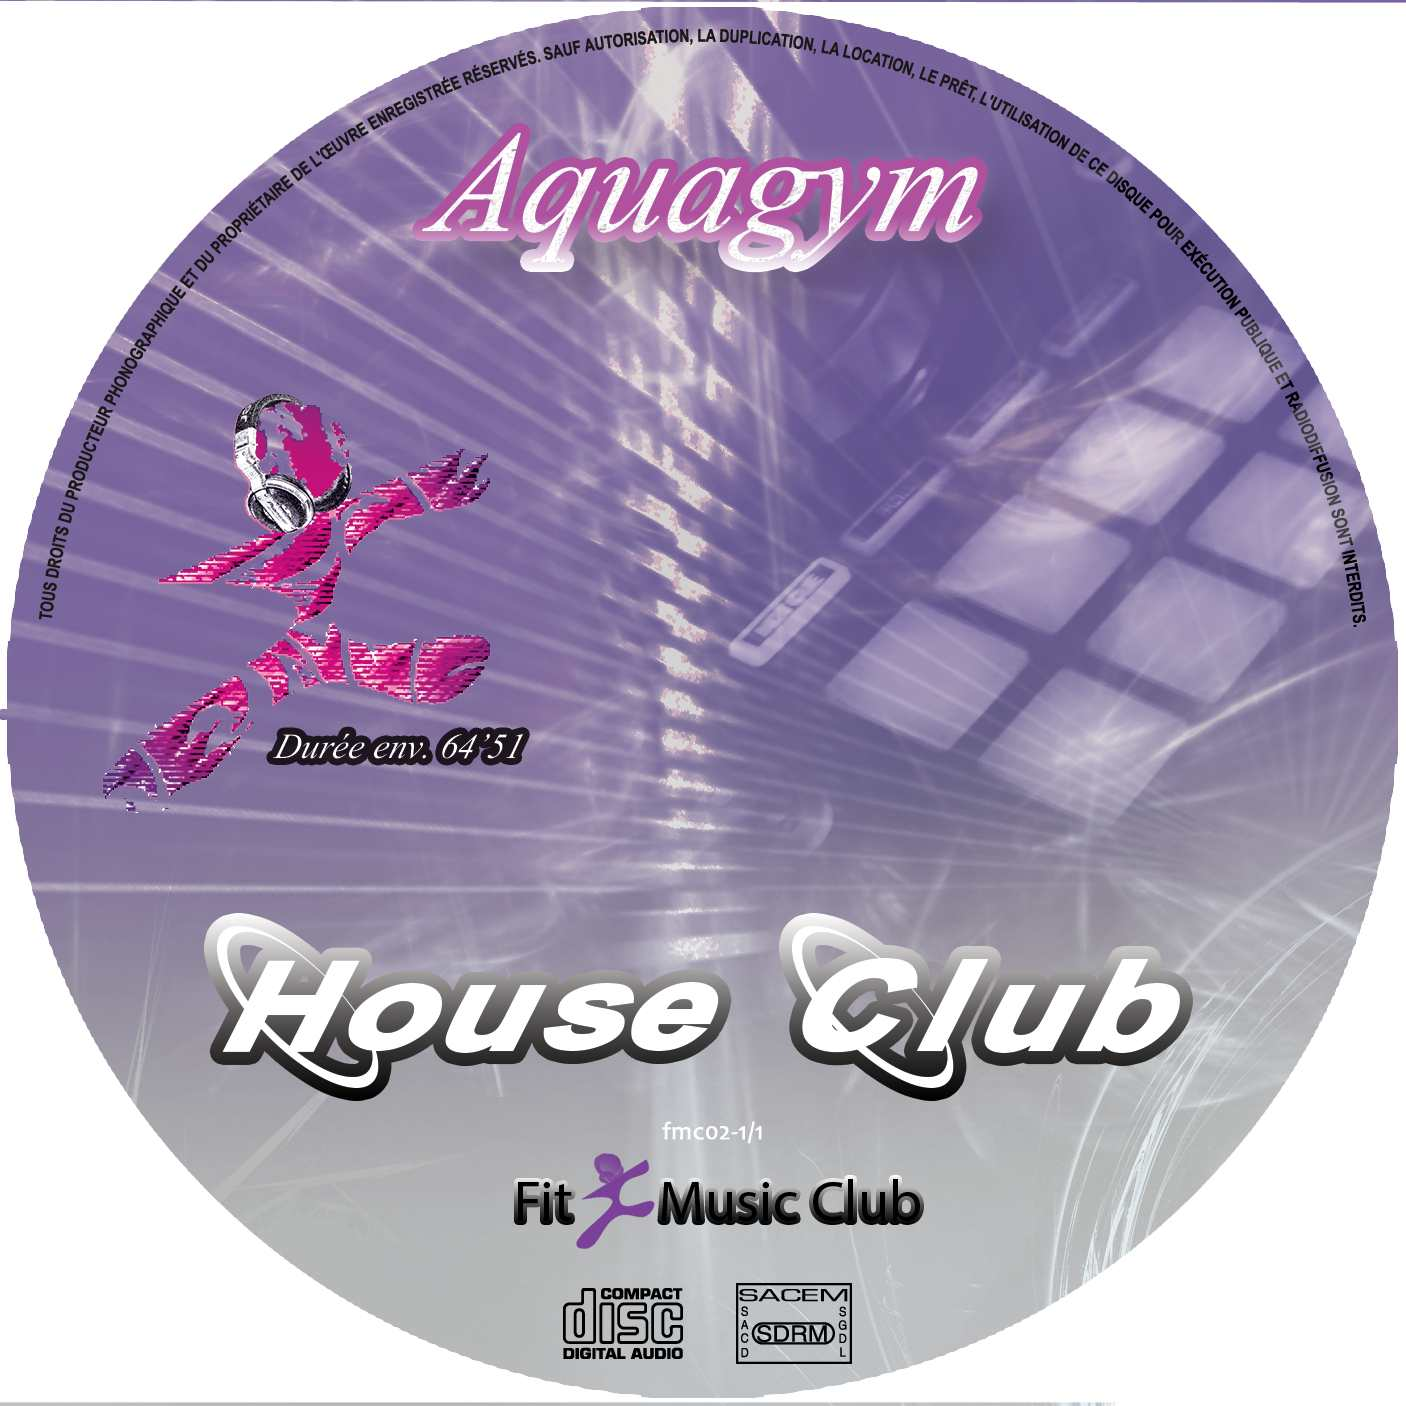 Cd House Club Aquagym